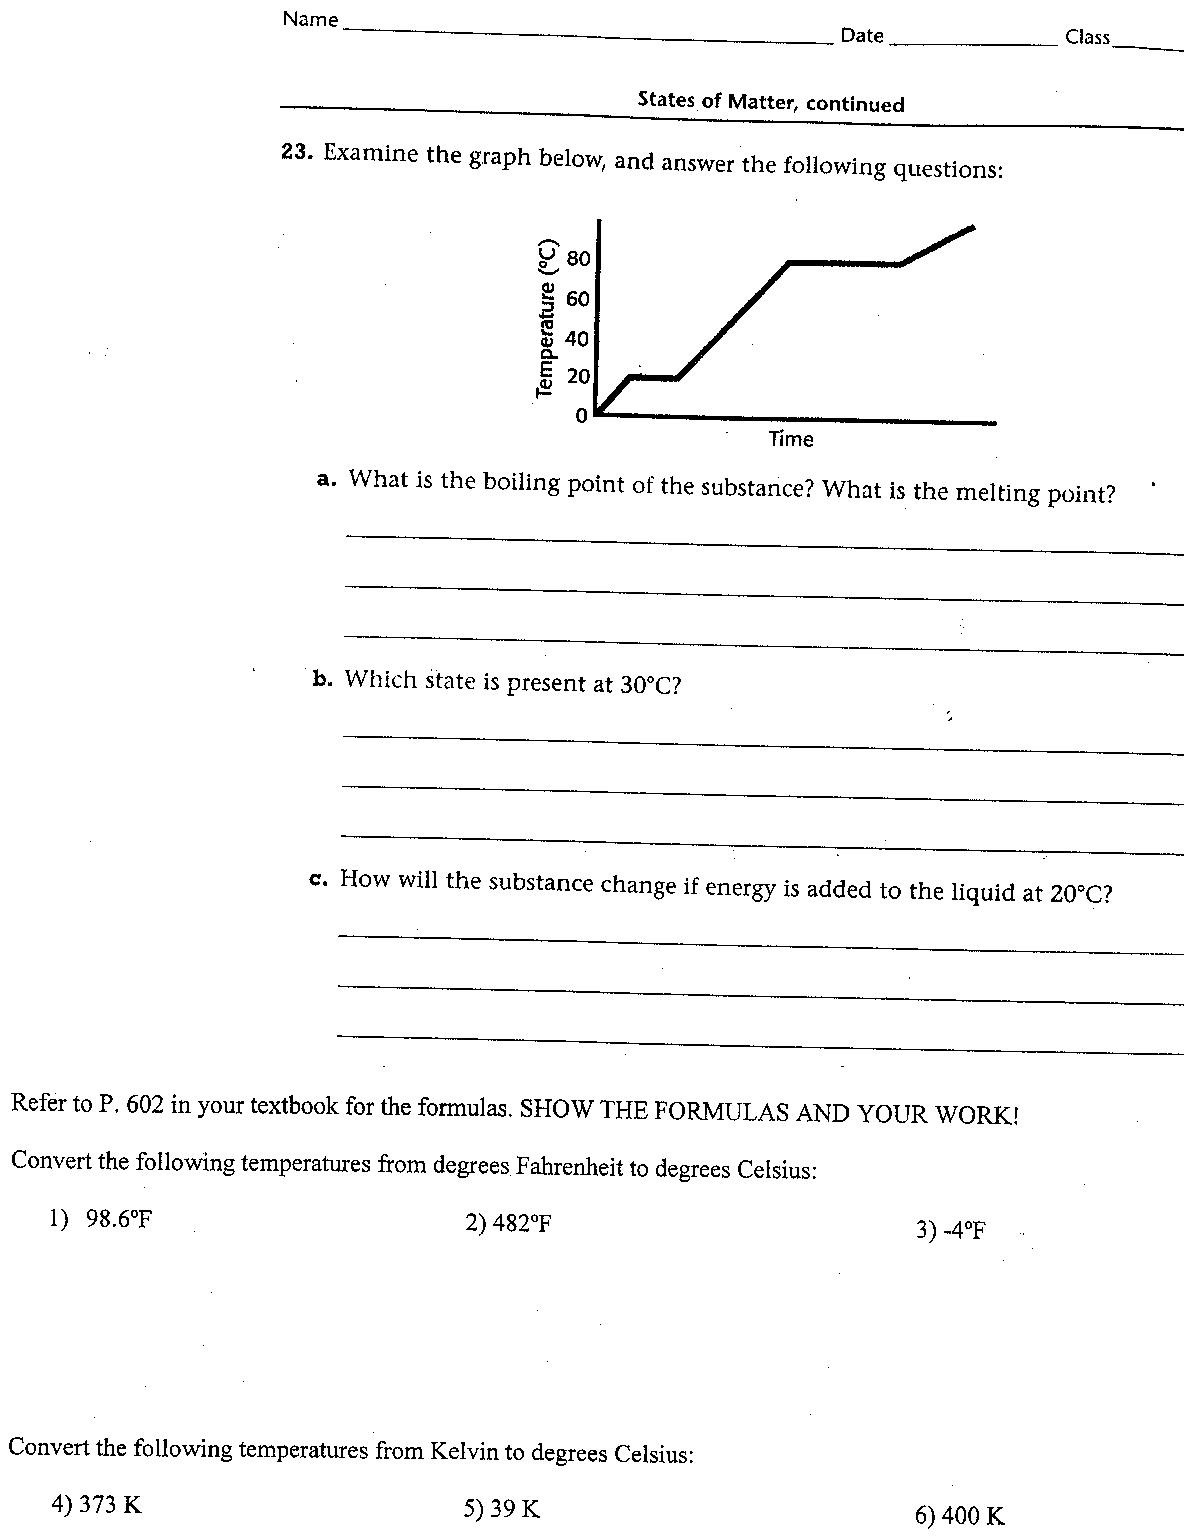 Heating and Cooling Curves Worksheet Rs Heating Heating and Cooling Curves Worksheet